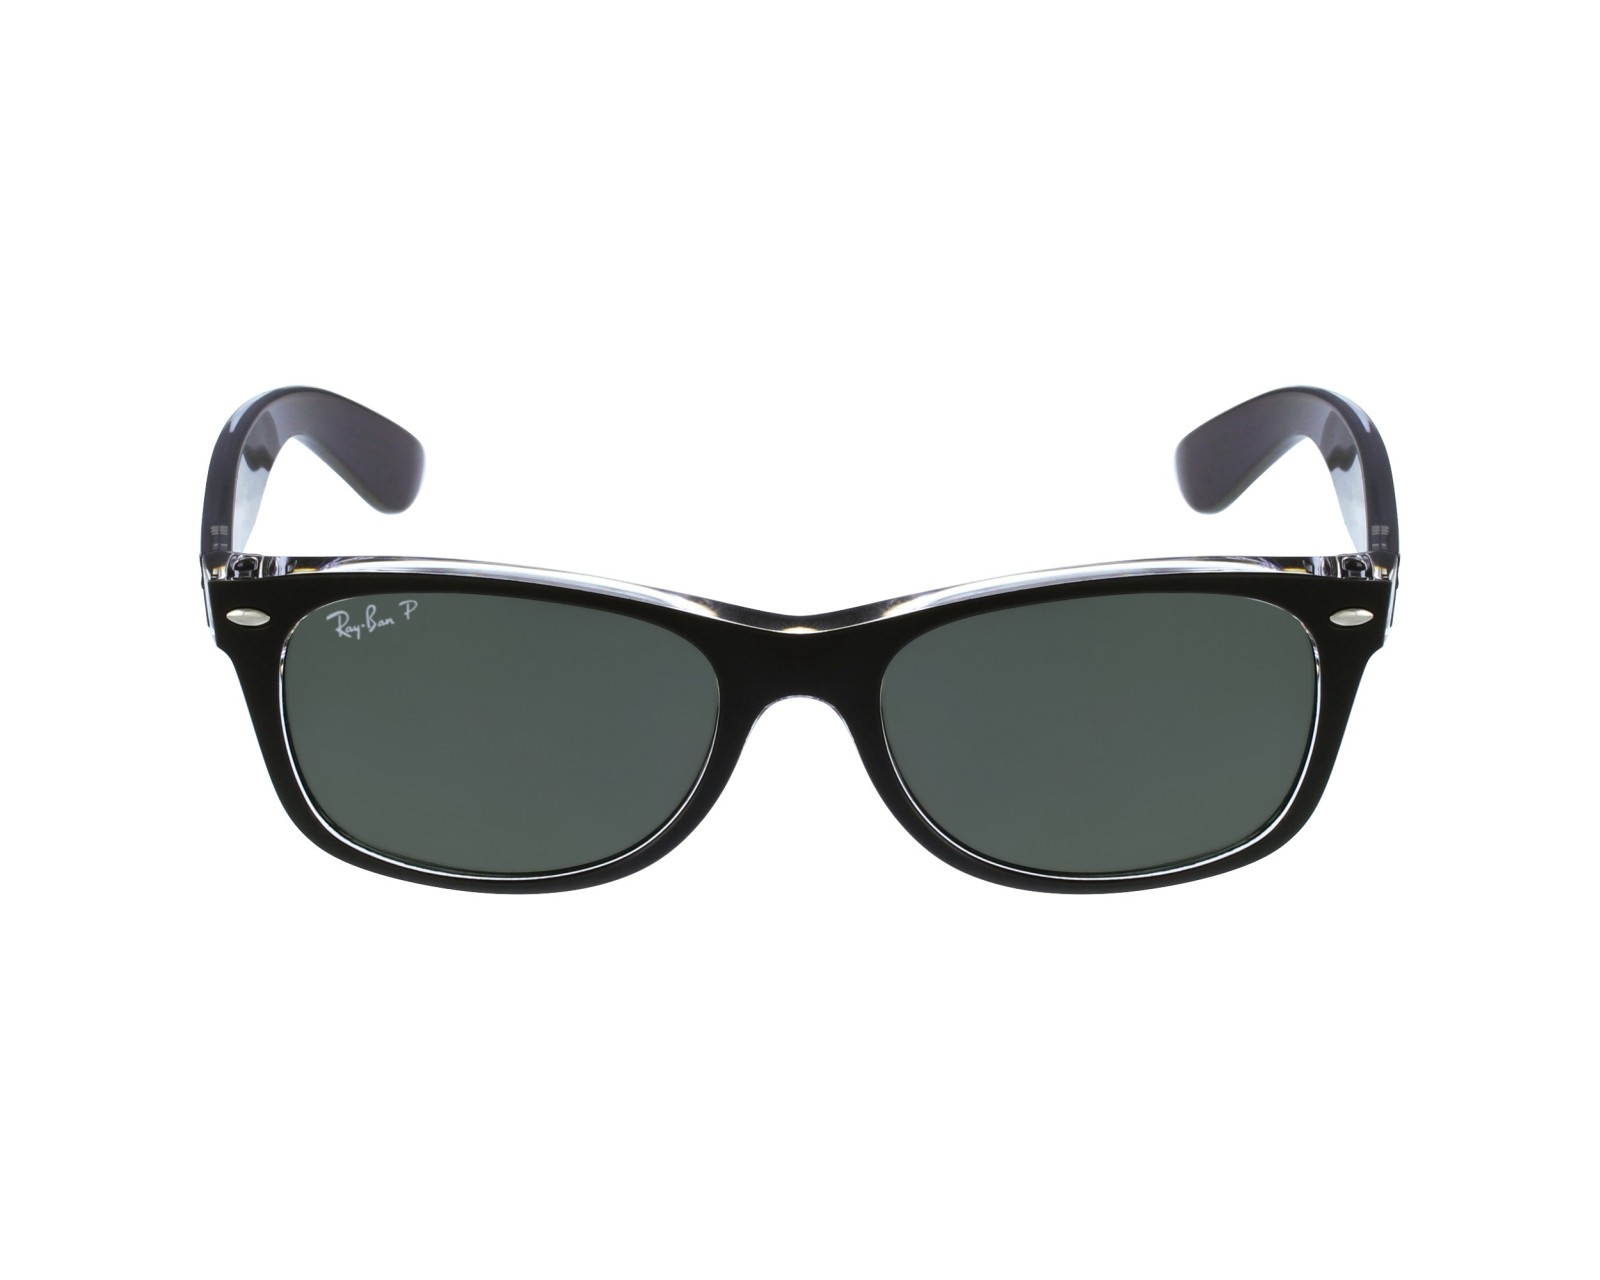 41fb0695697 Sunglasses Ray-Ban RB-2132 605258 52-18 Black profile view